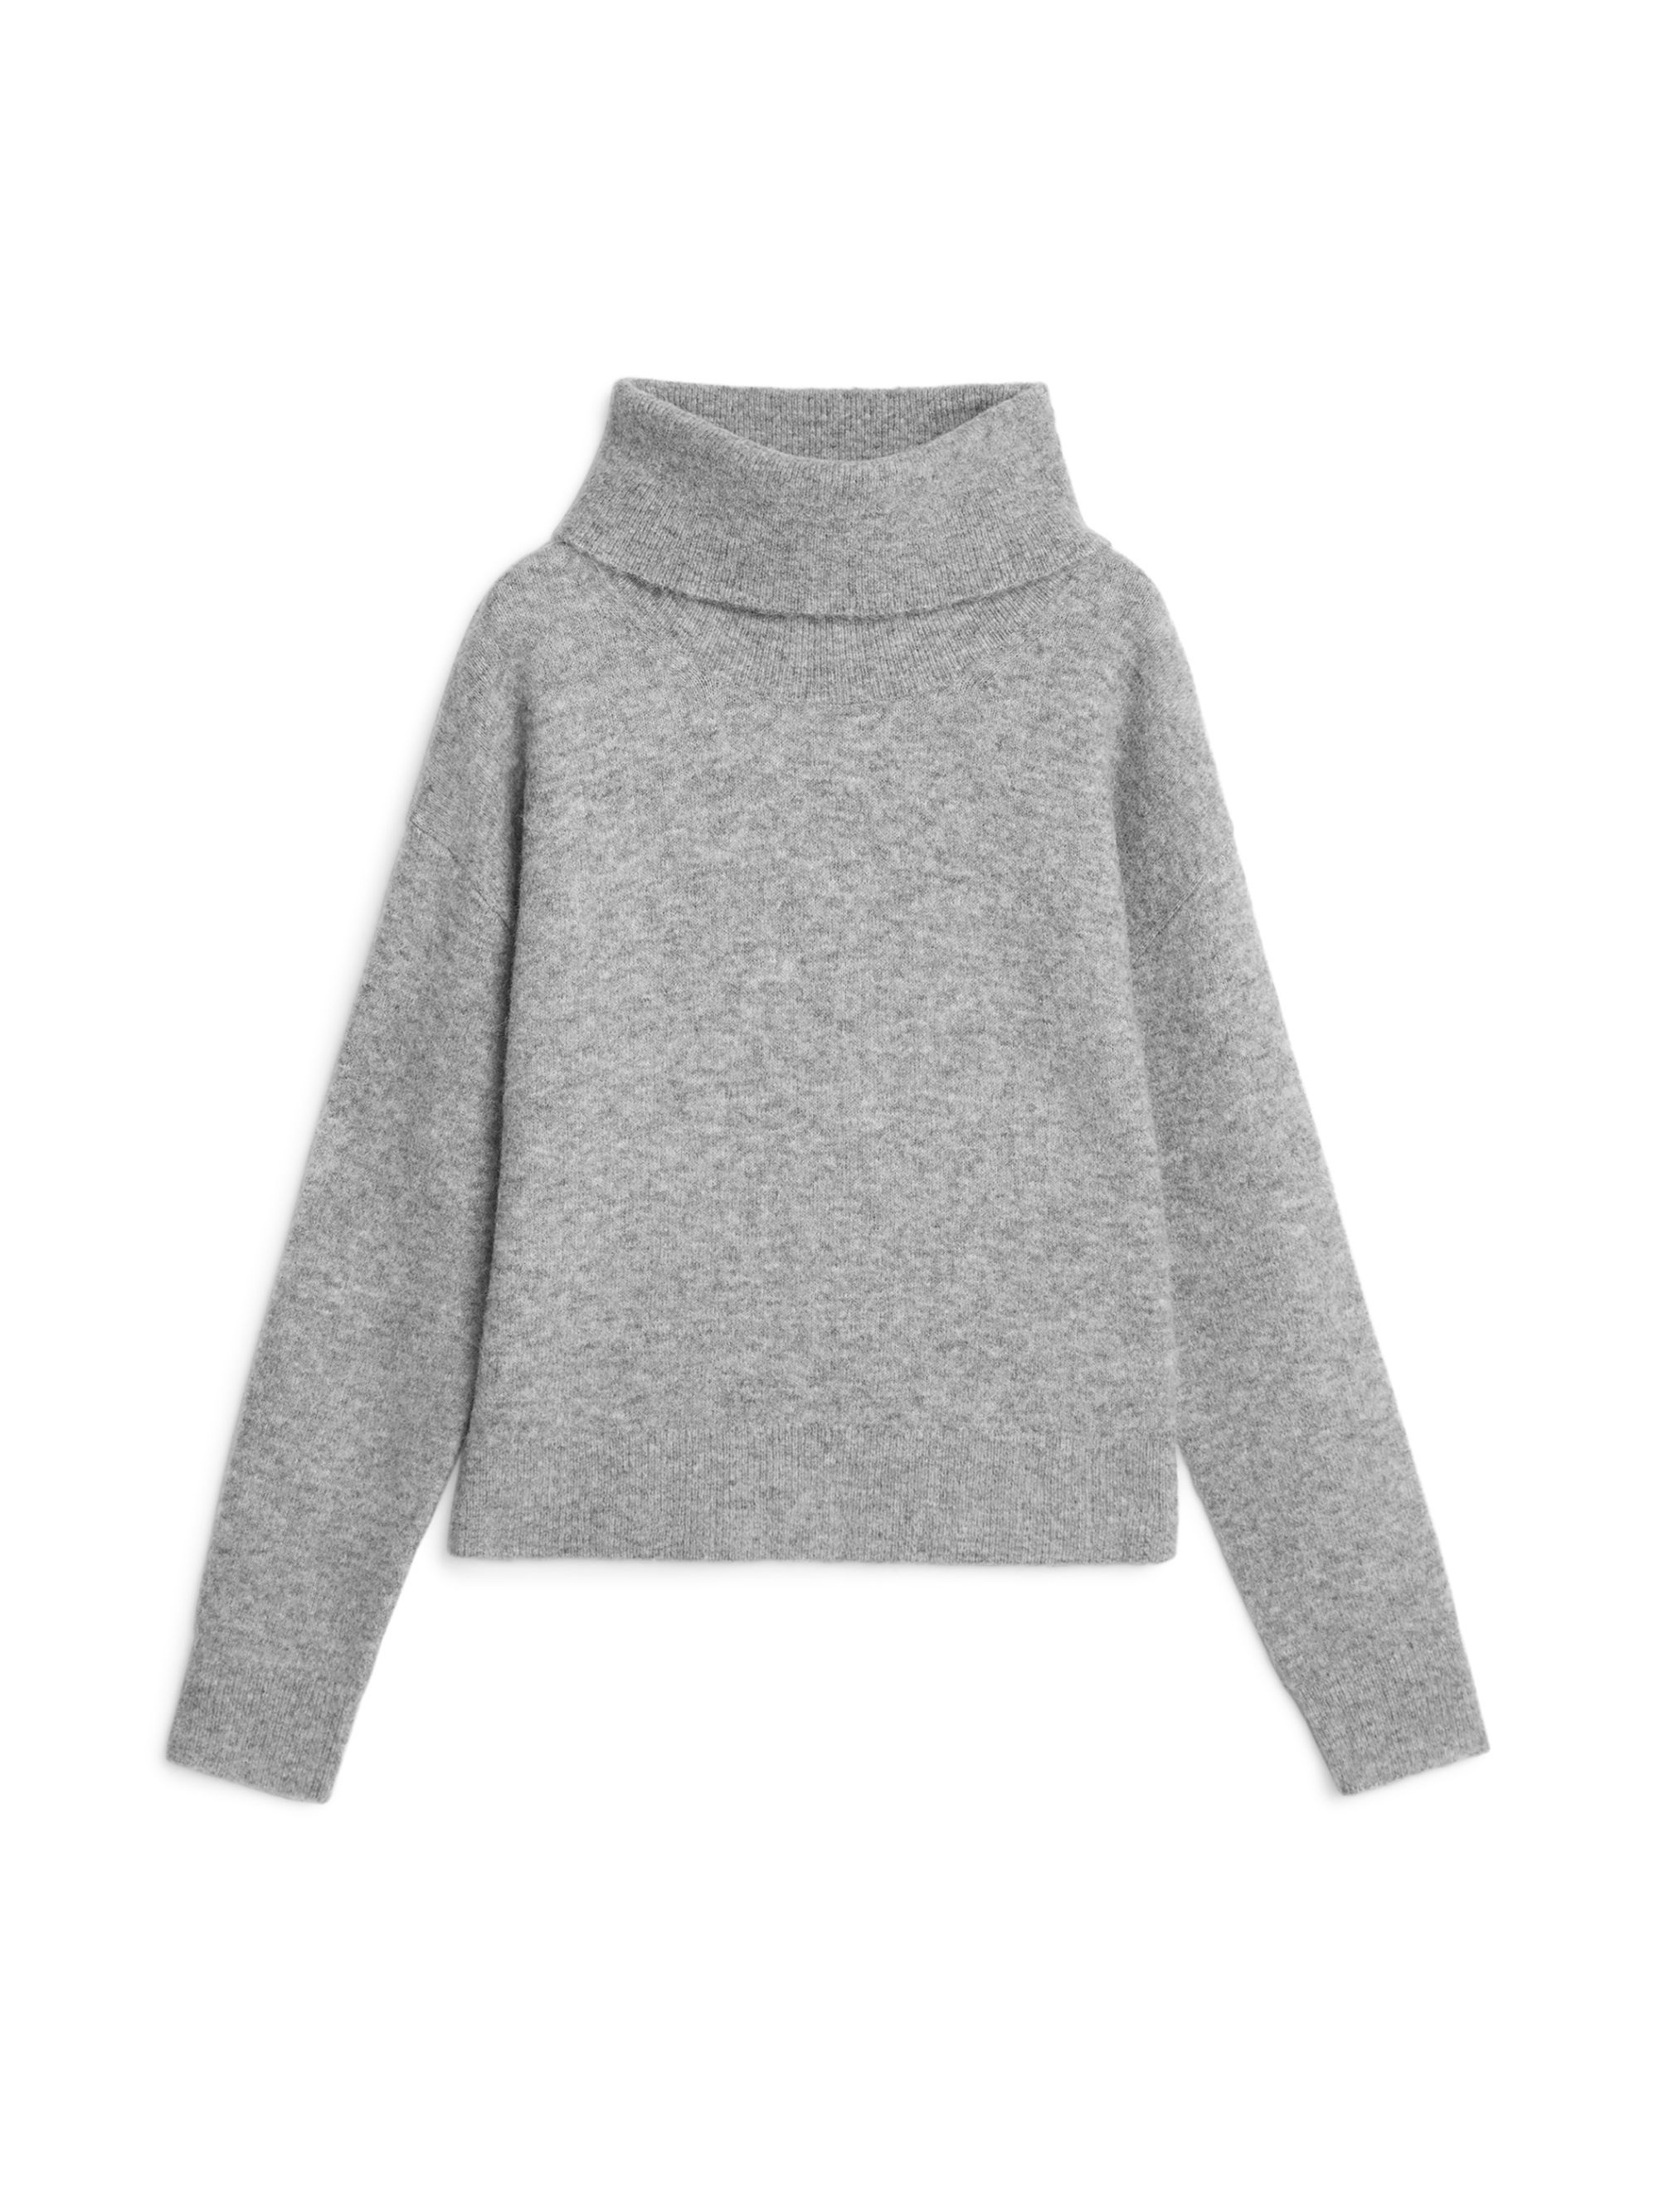 93108a8d8d440e 222040-114 - Cropped Roll-Neck Jumper. The yarn used for this knit is a  blend of super-fine alpaca fibres, soft merino wool, strong and lightweight  nylon ...